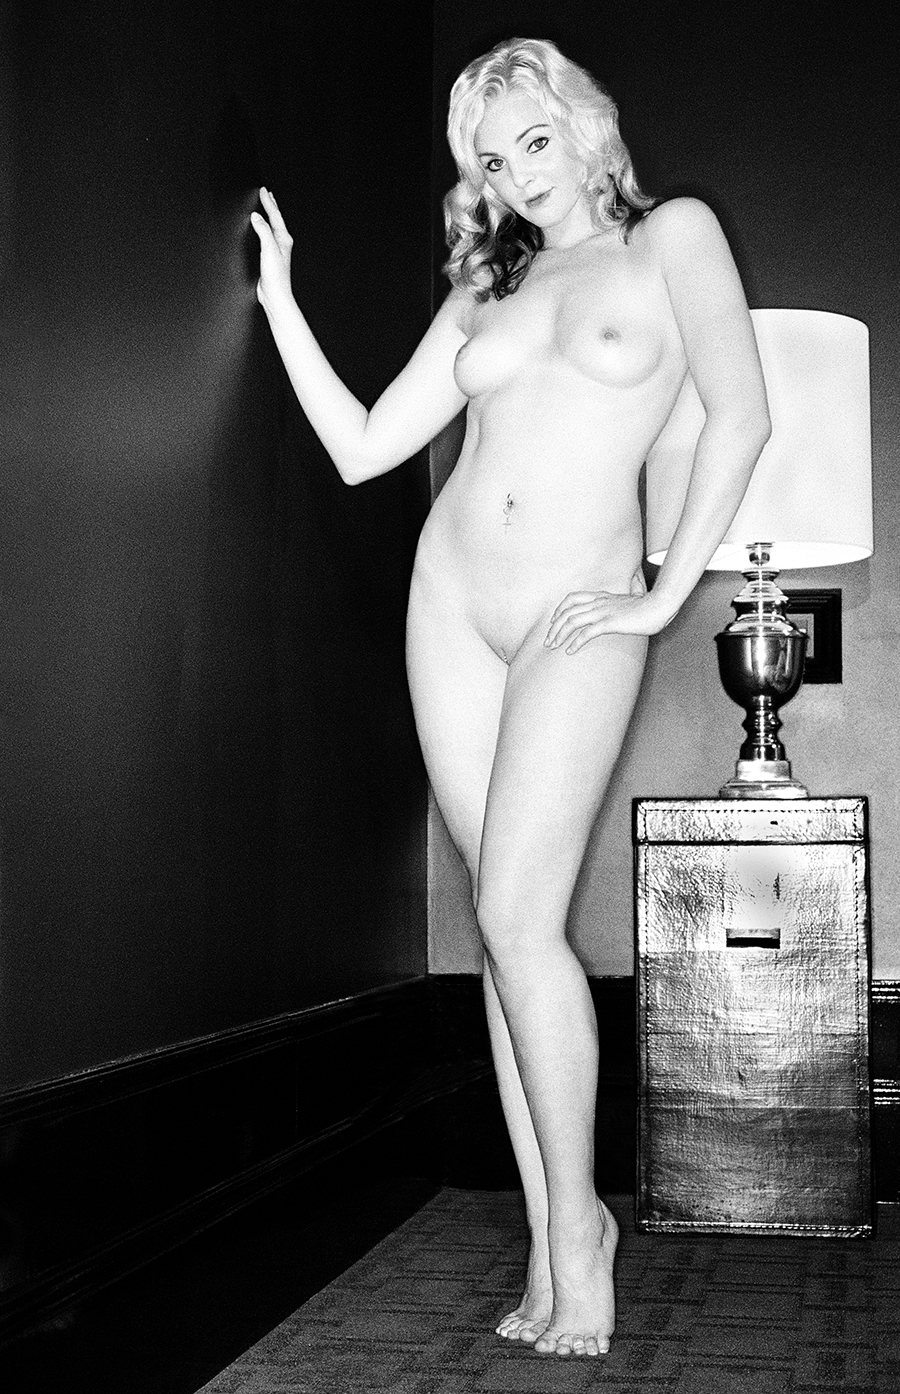 Tony_Ward_Studio_erotic_photography_Dutch_women_model_Dagmar_Amsterdam_bartender_blonde_beauty_nudity_topless_nudes_black_white